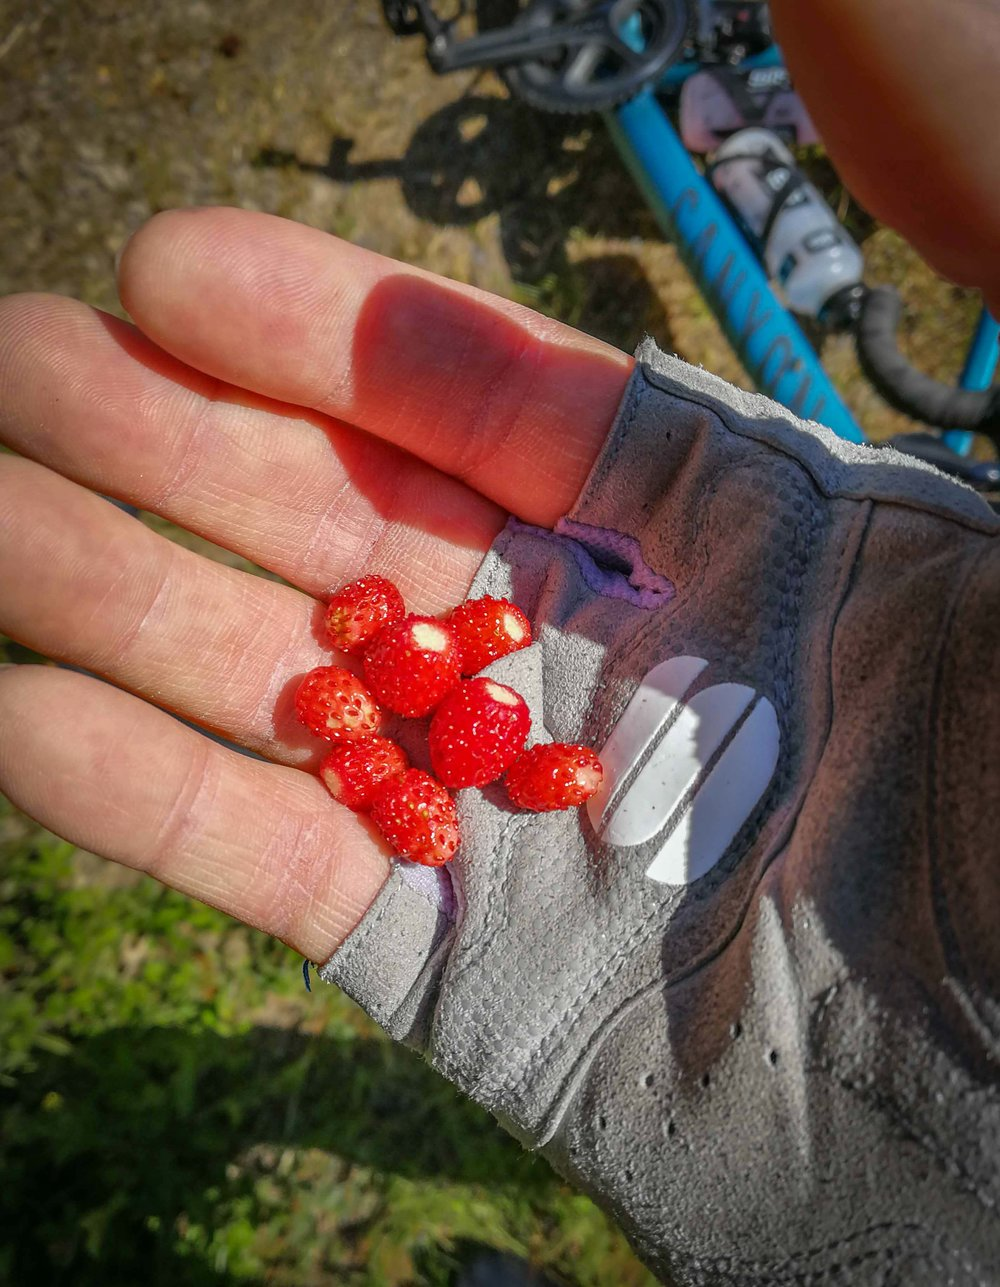 The most impressive piece of superfood there is. Wild strawberries is a must eat during the summer season. Heaven.